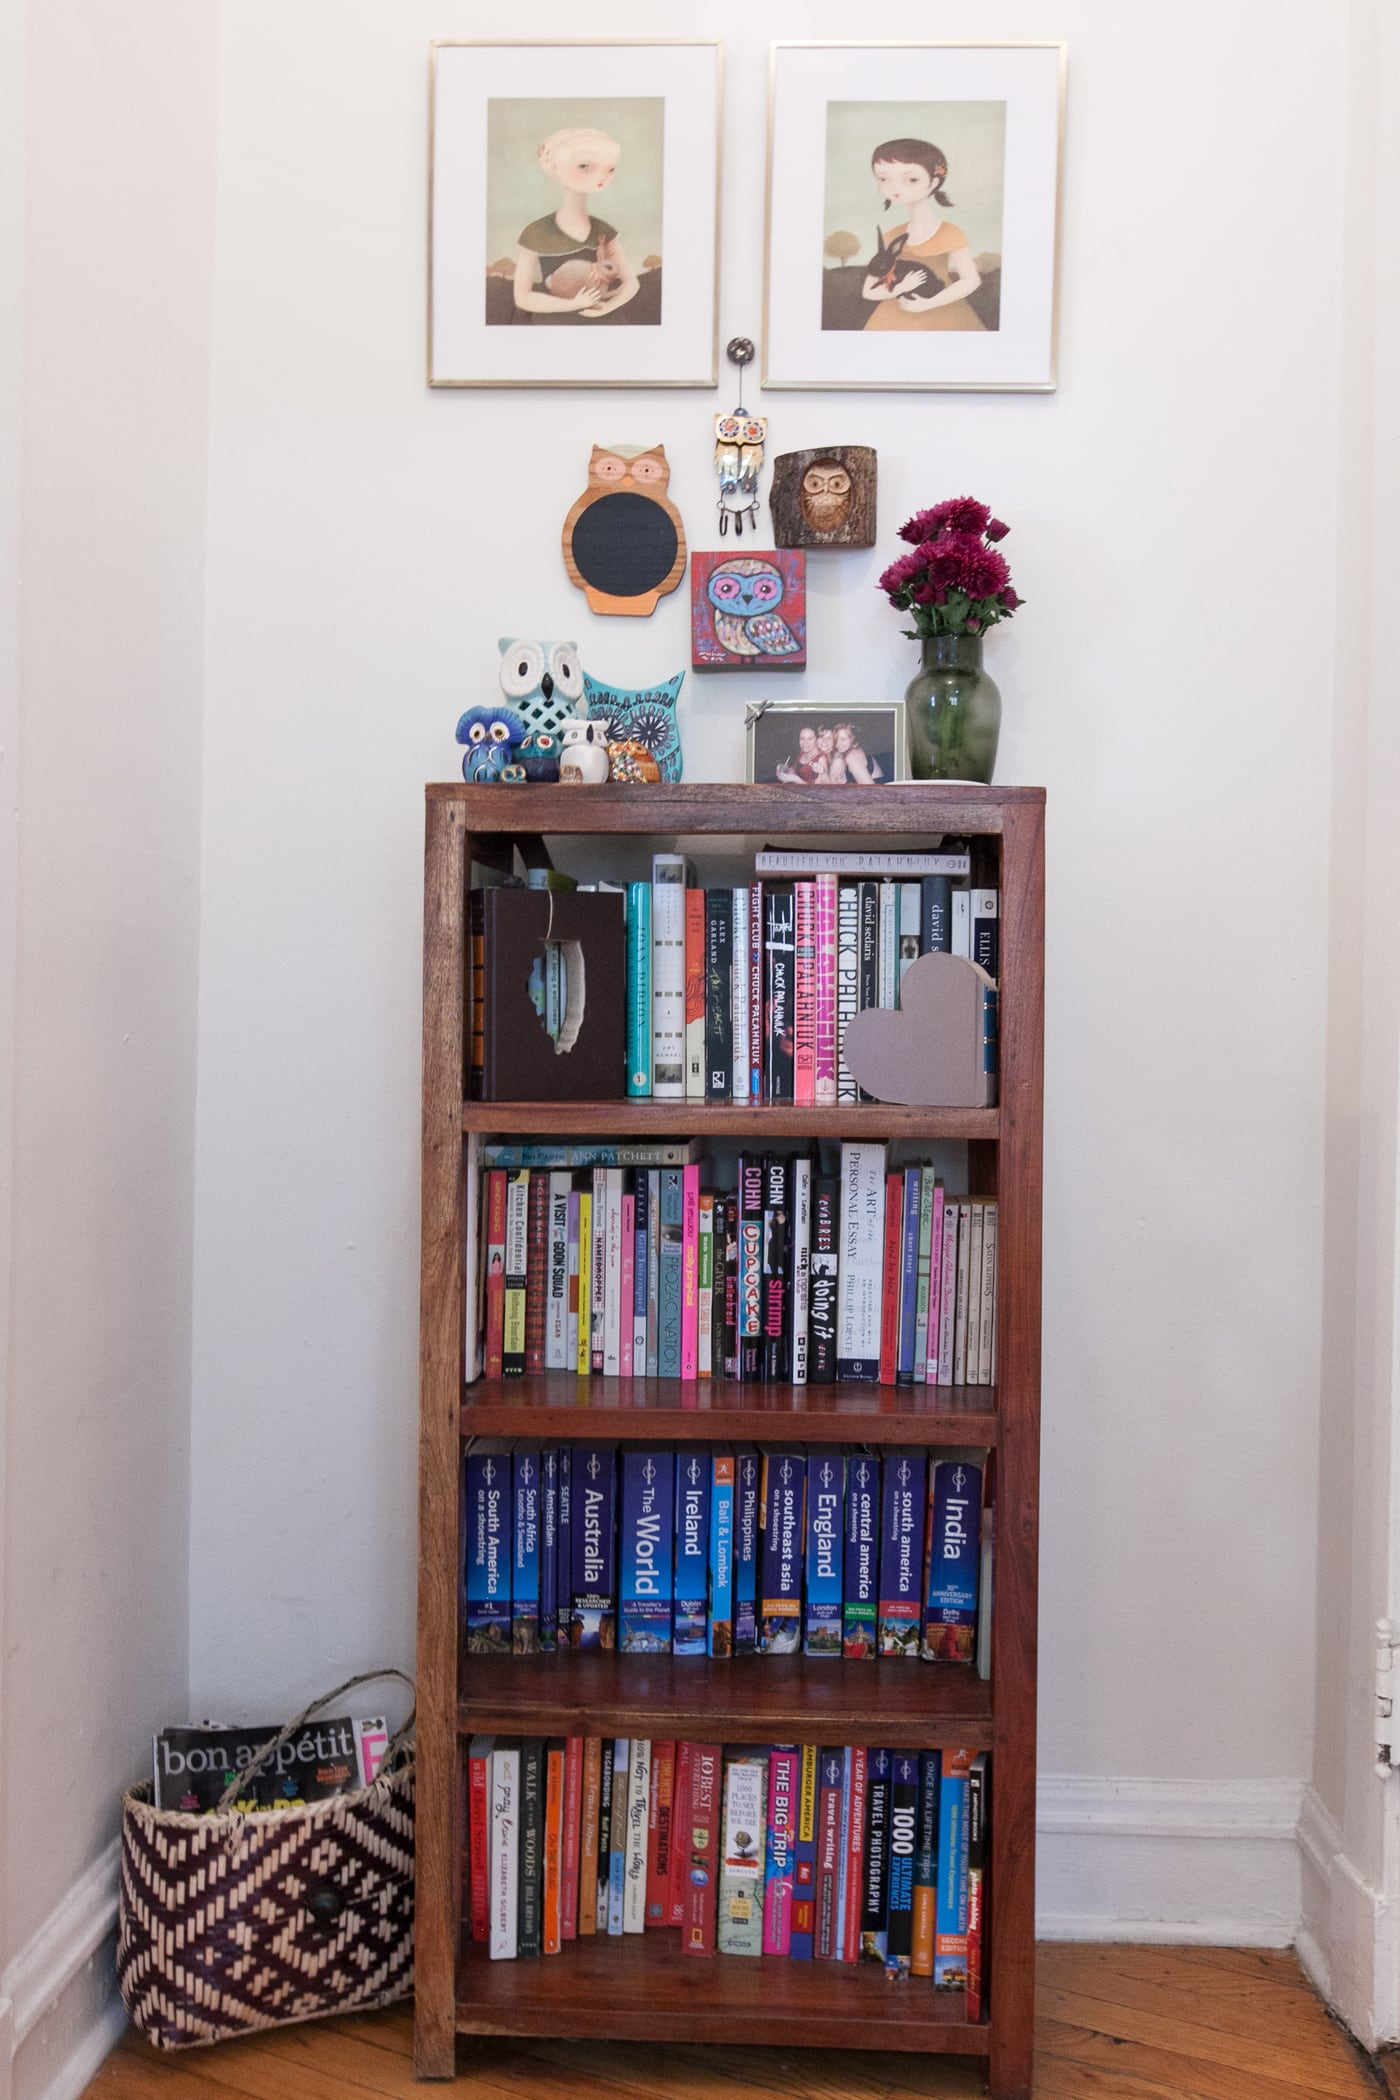 The bookcase in my entryway.